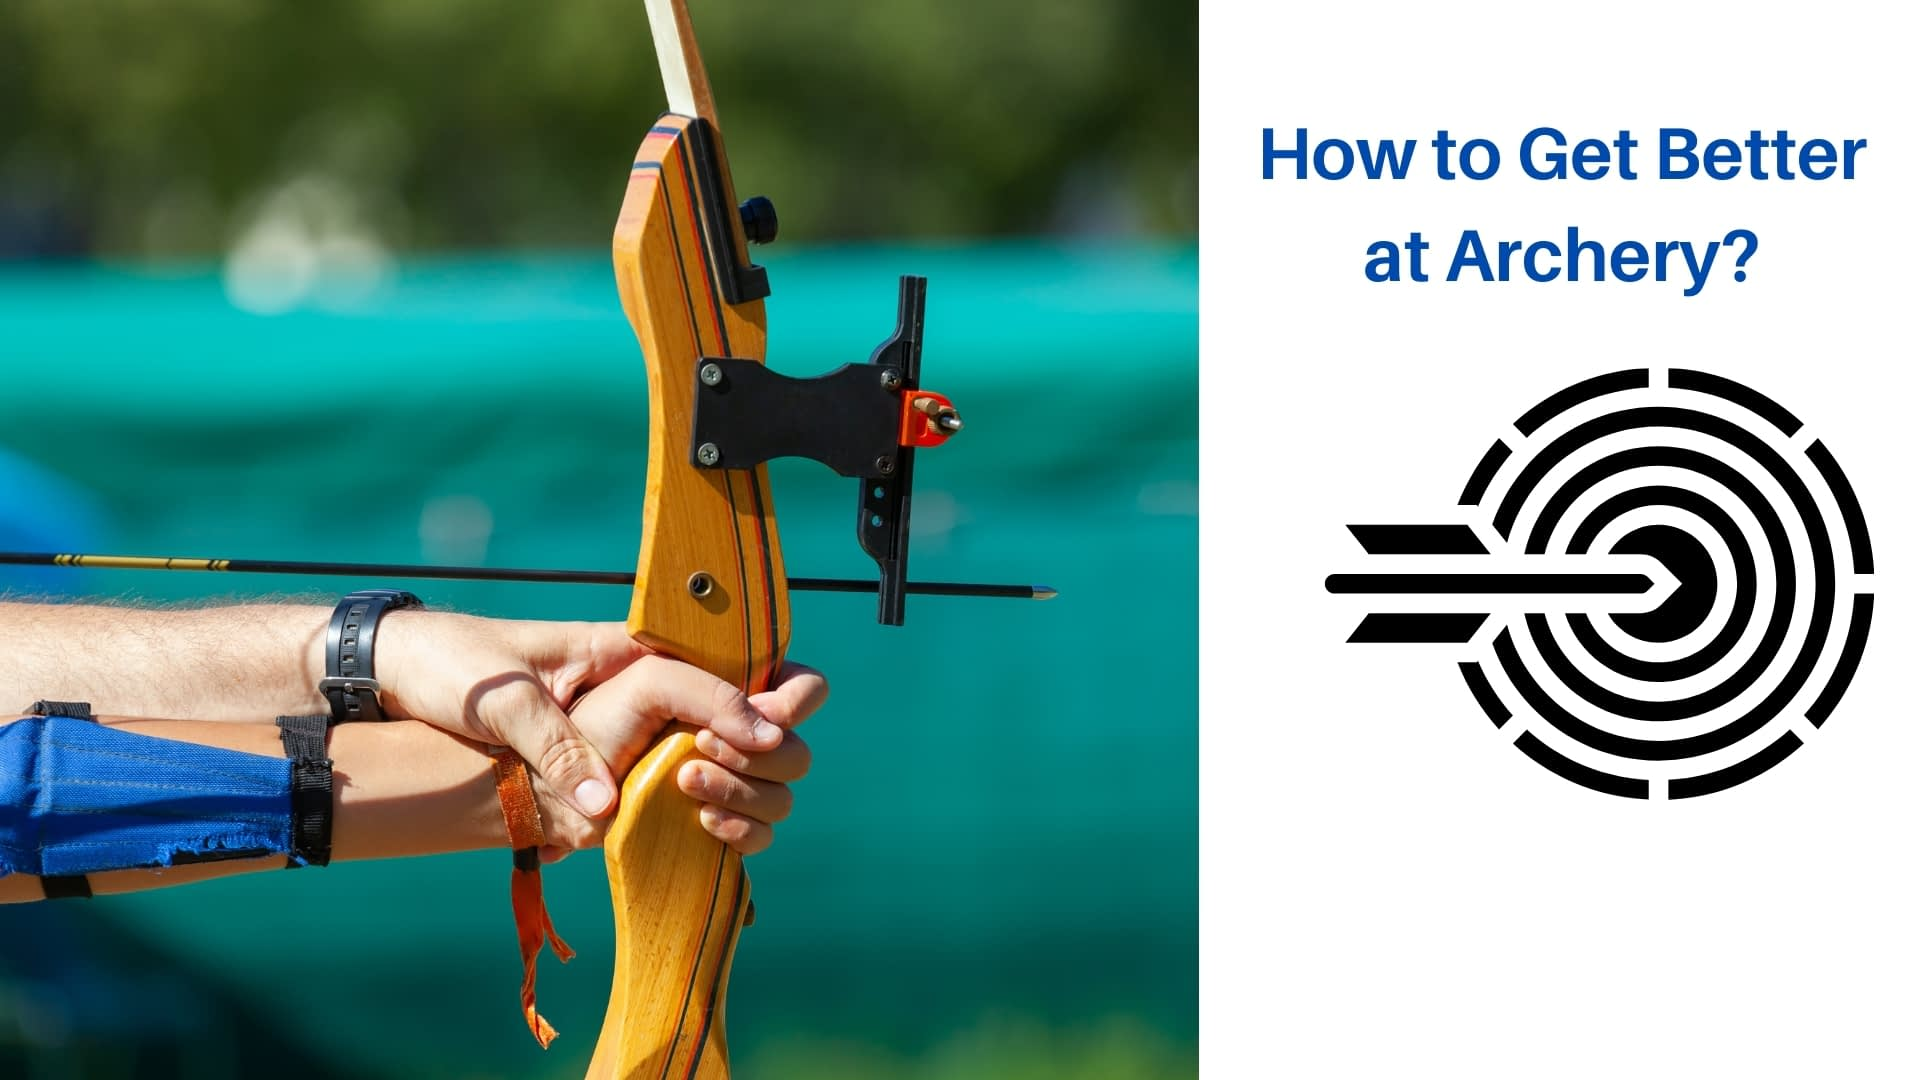 How to Get Better at Archery